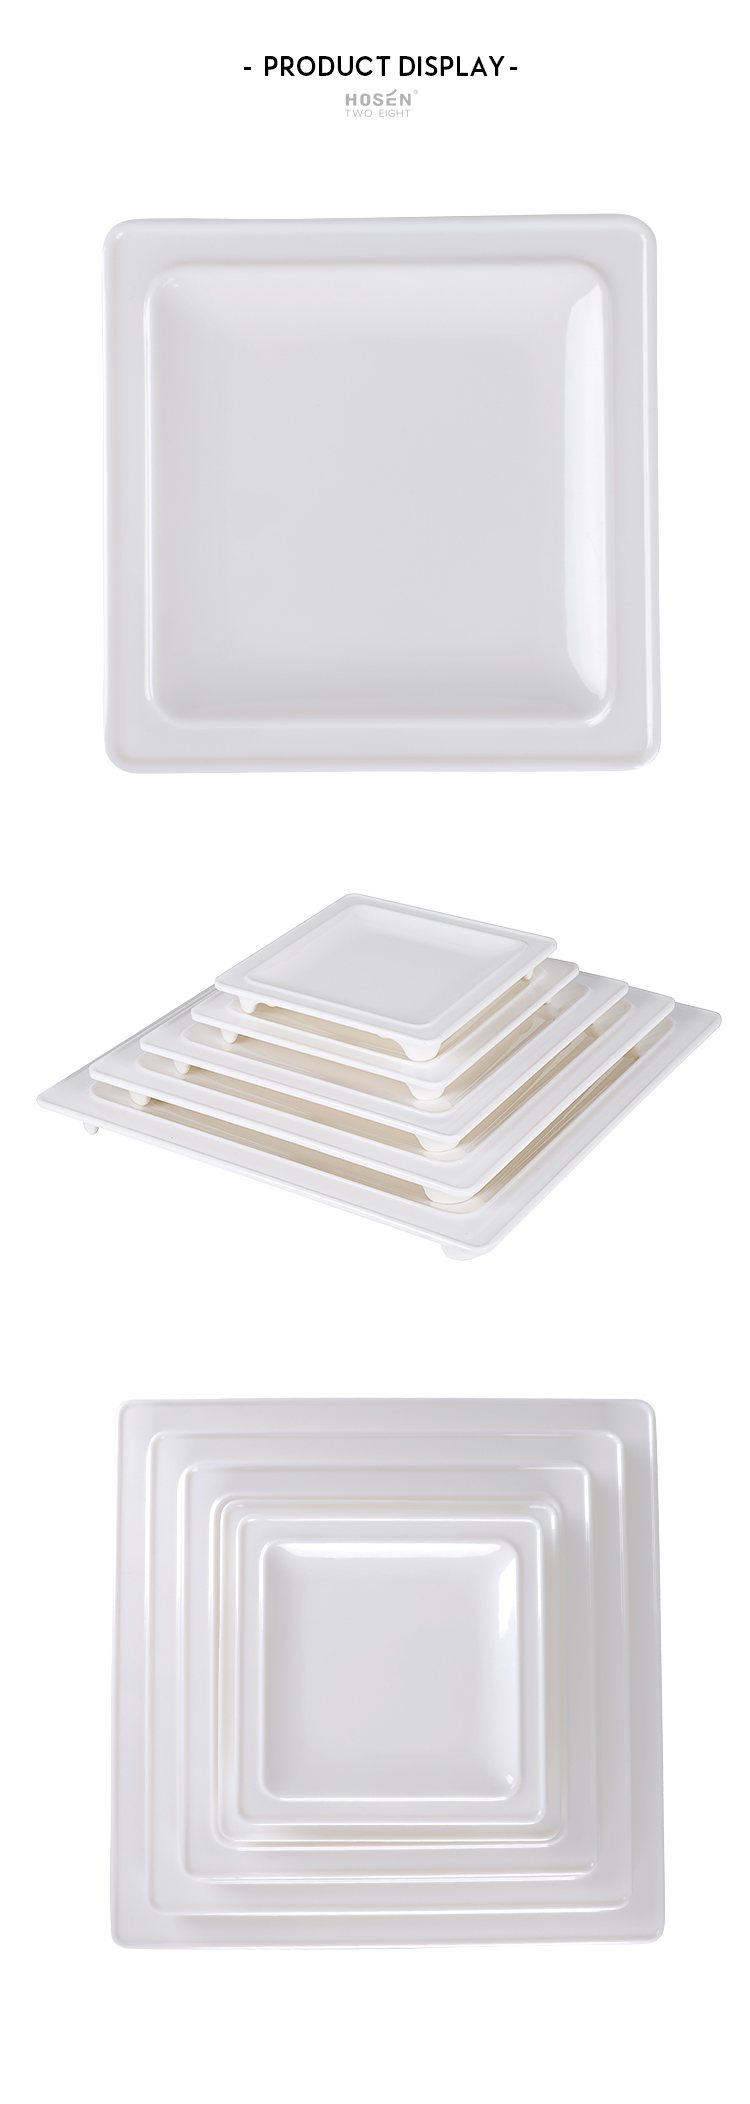 7'' 8'' 10'' 12'' 14'' Melamine Plastic Square Food Serving Plate, Big Size White Square Platter